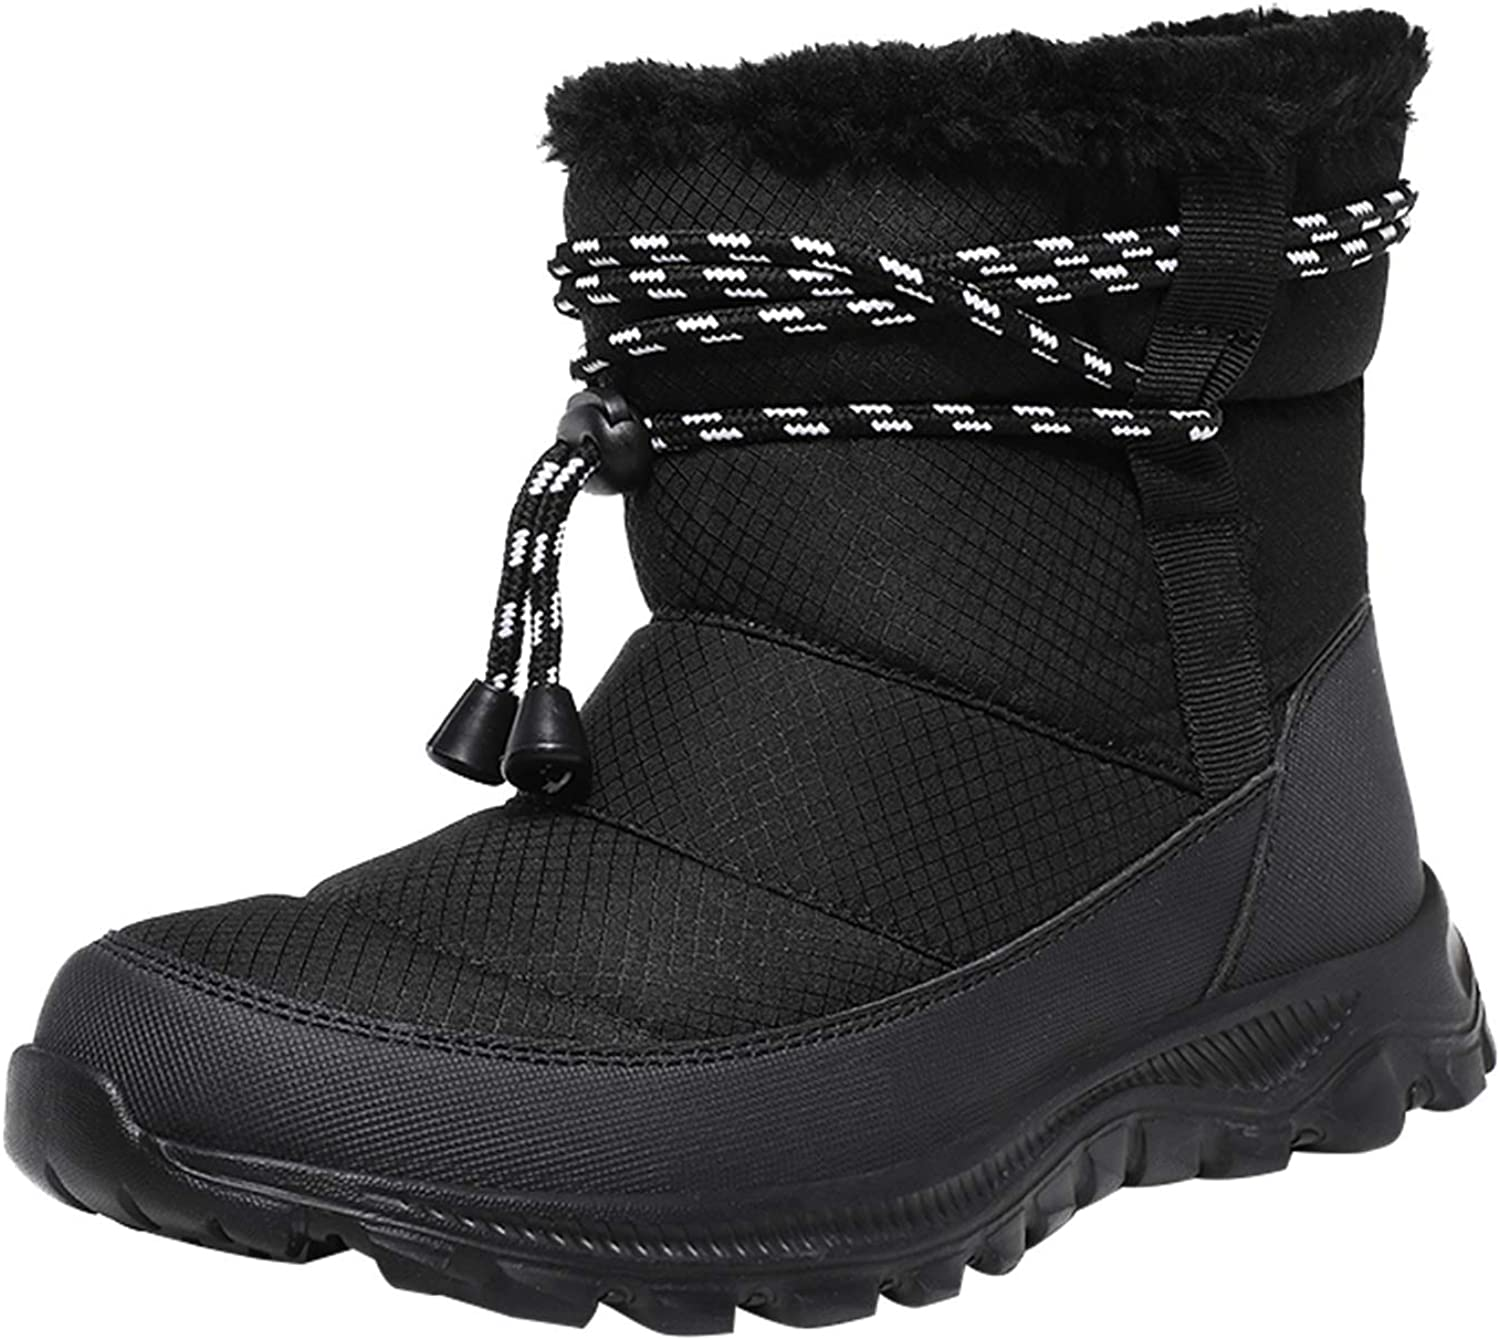 Barerun Snow Boots for Women Winter Fur Lined Warm Boots Slip On Mid Calf Outdoor Booties Water Resistance Shoes